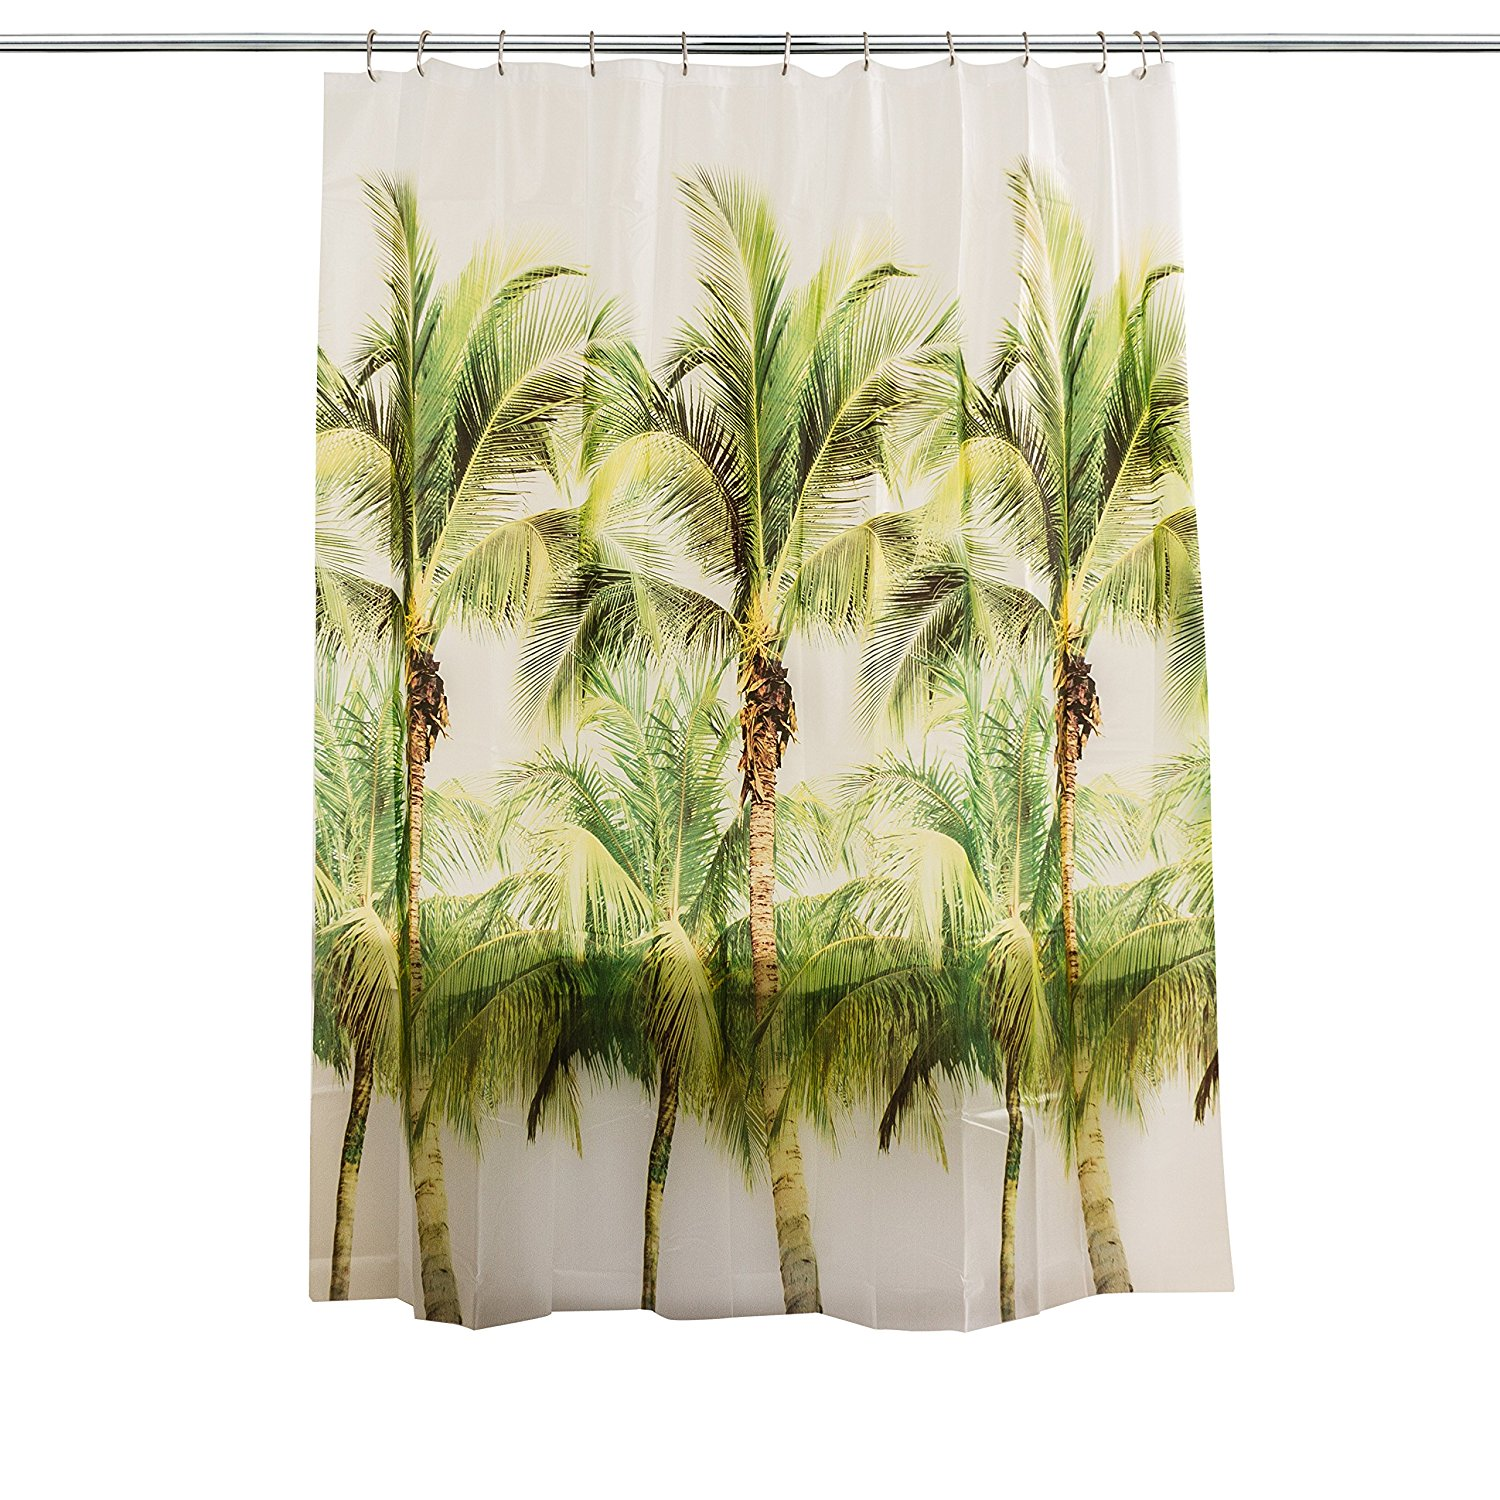 Cheap Palm Tree Shower Curtain Find Palm Tree Shower